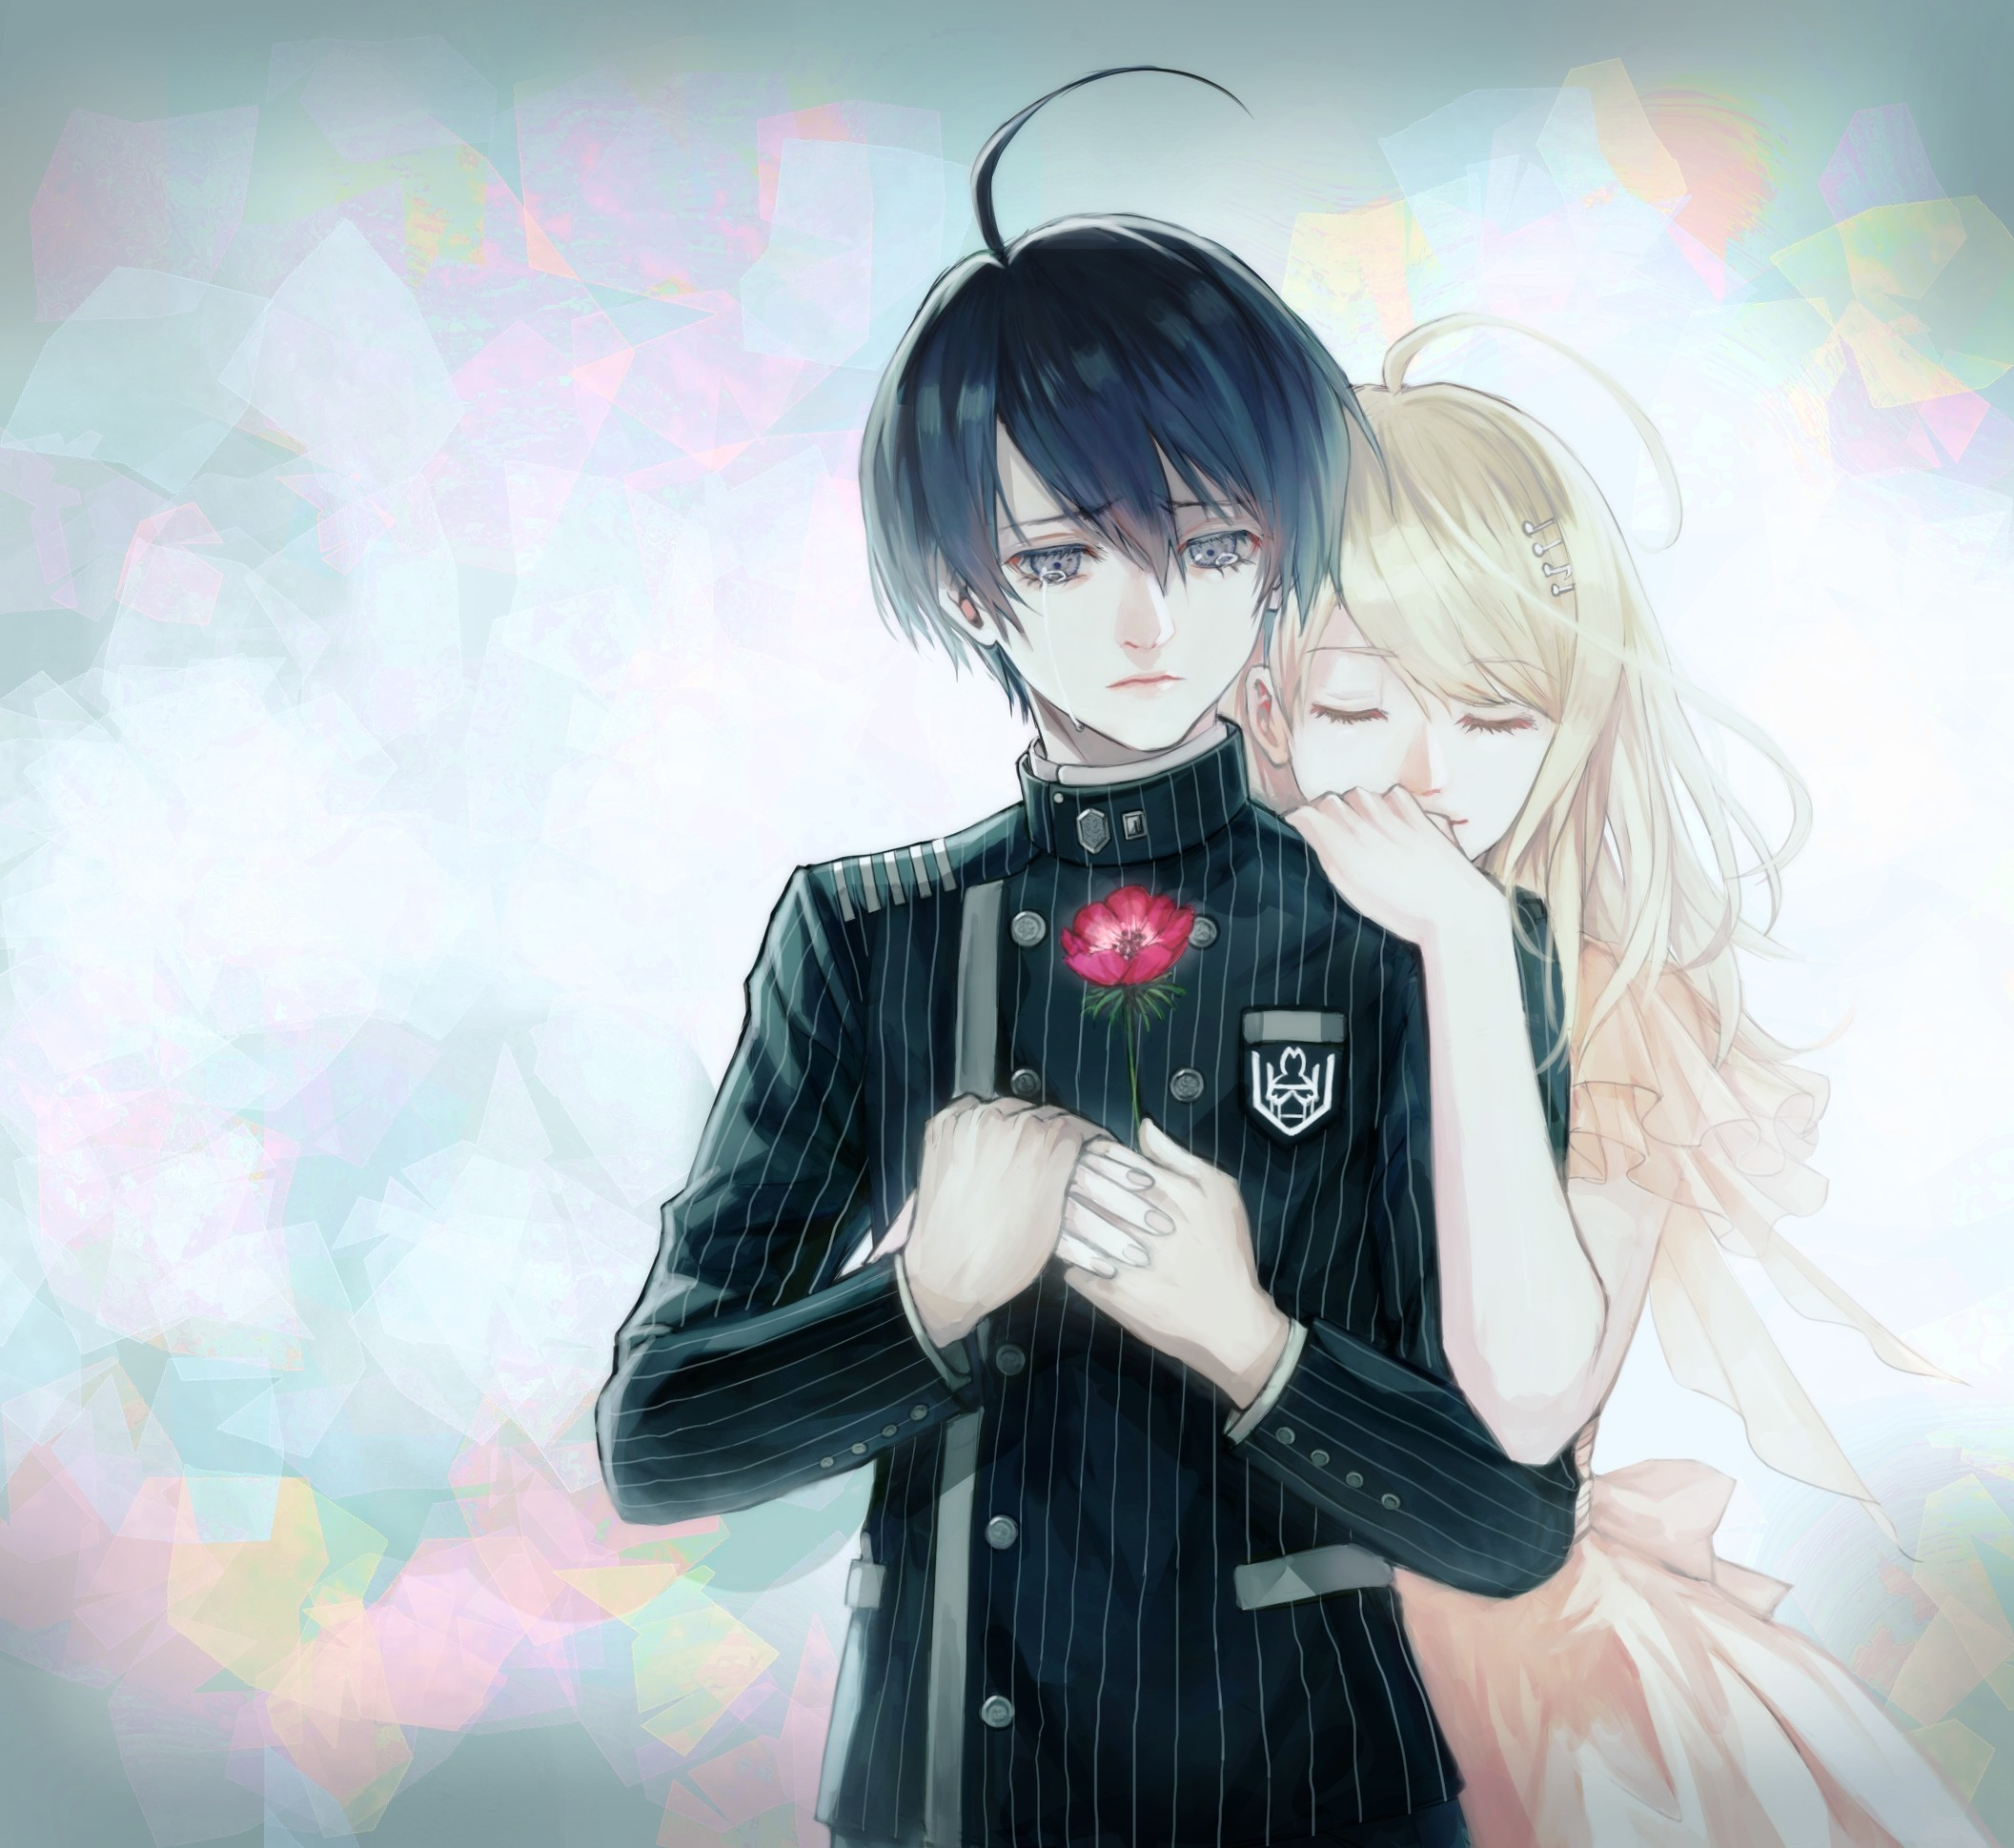 Crying Wallpaper Sad Romance Anime Pictures Www Picturesboss Com